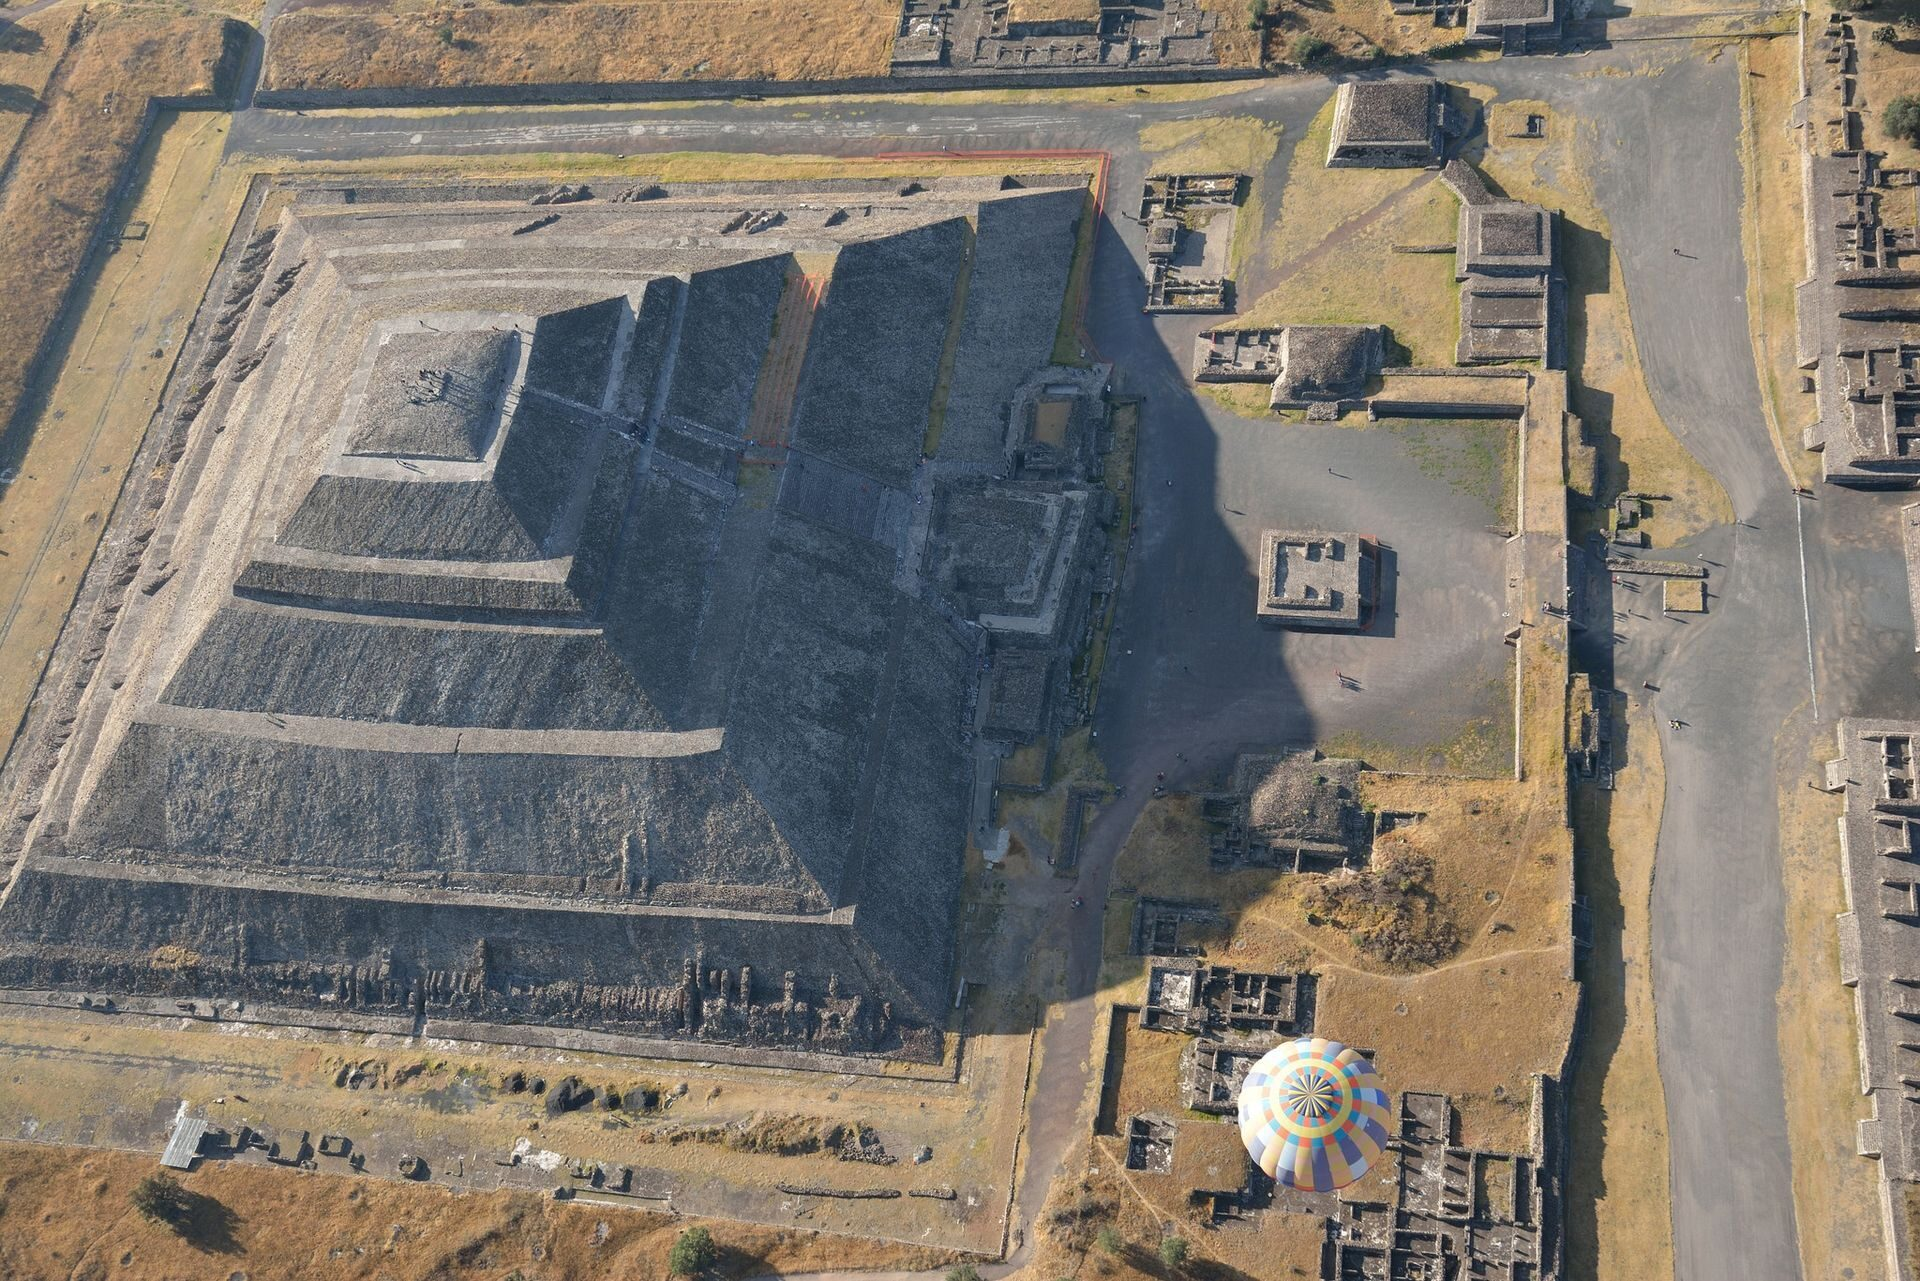 an introduction to the history of teotihiacan